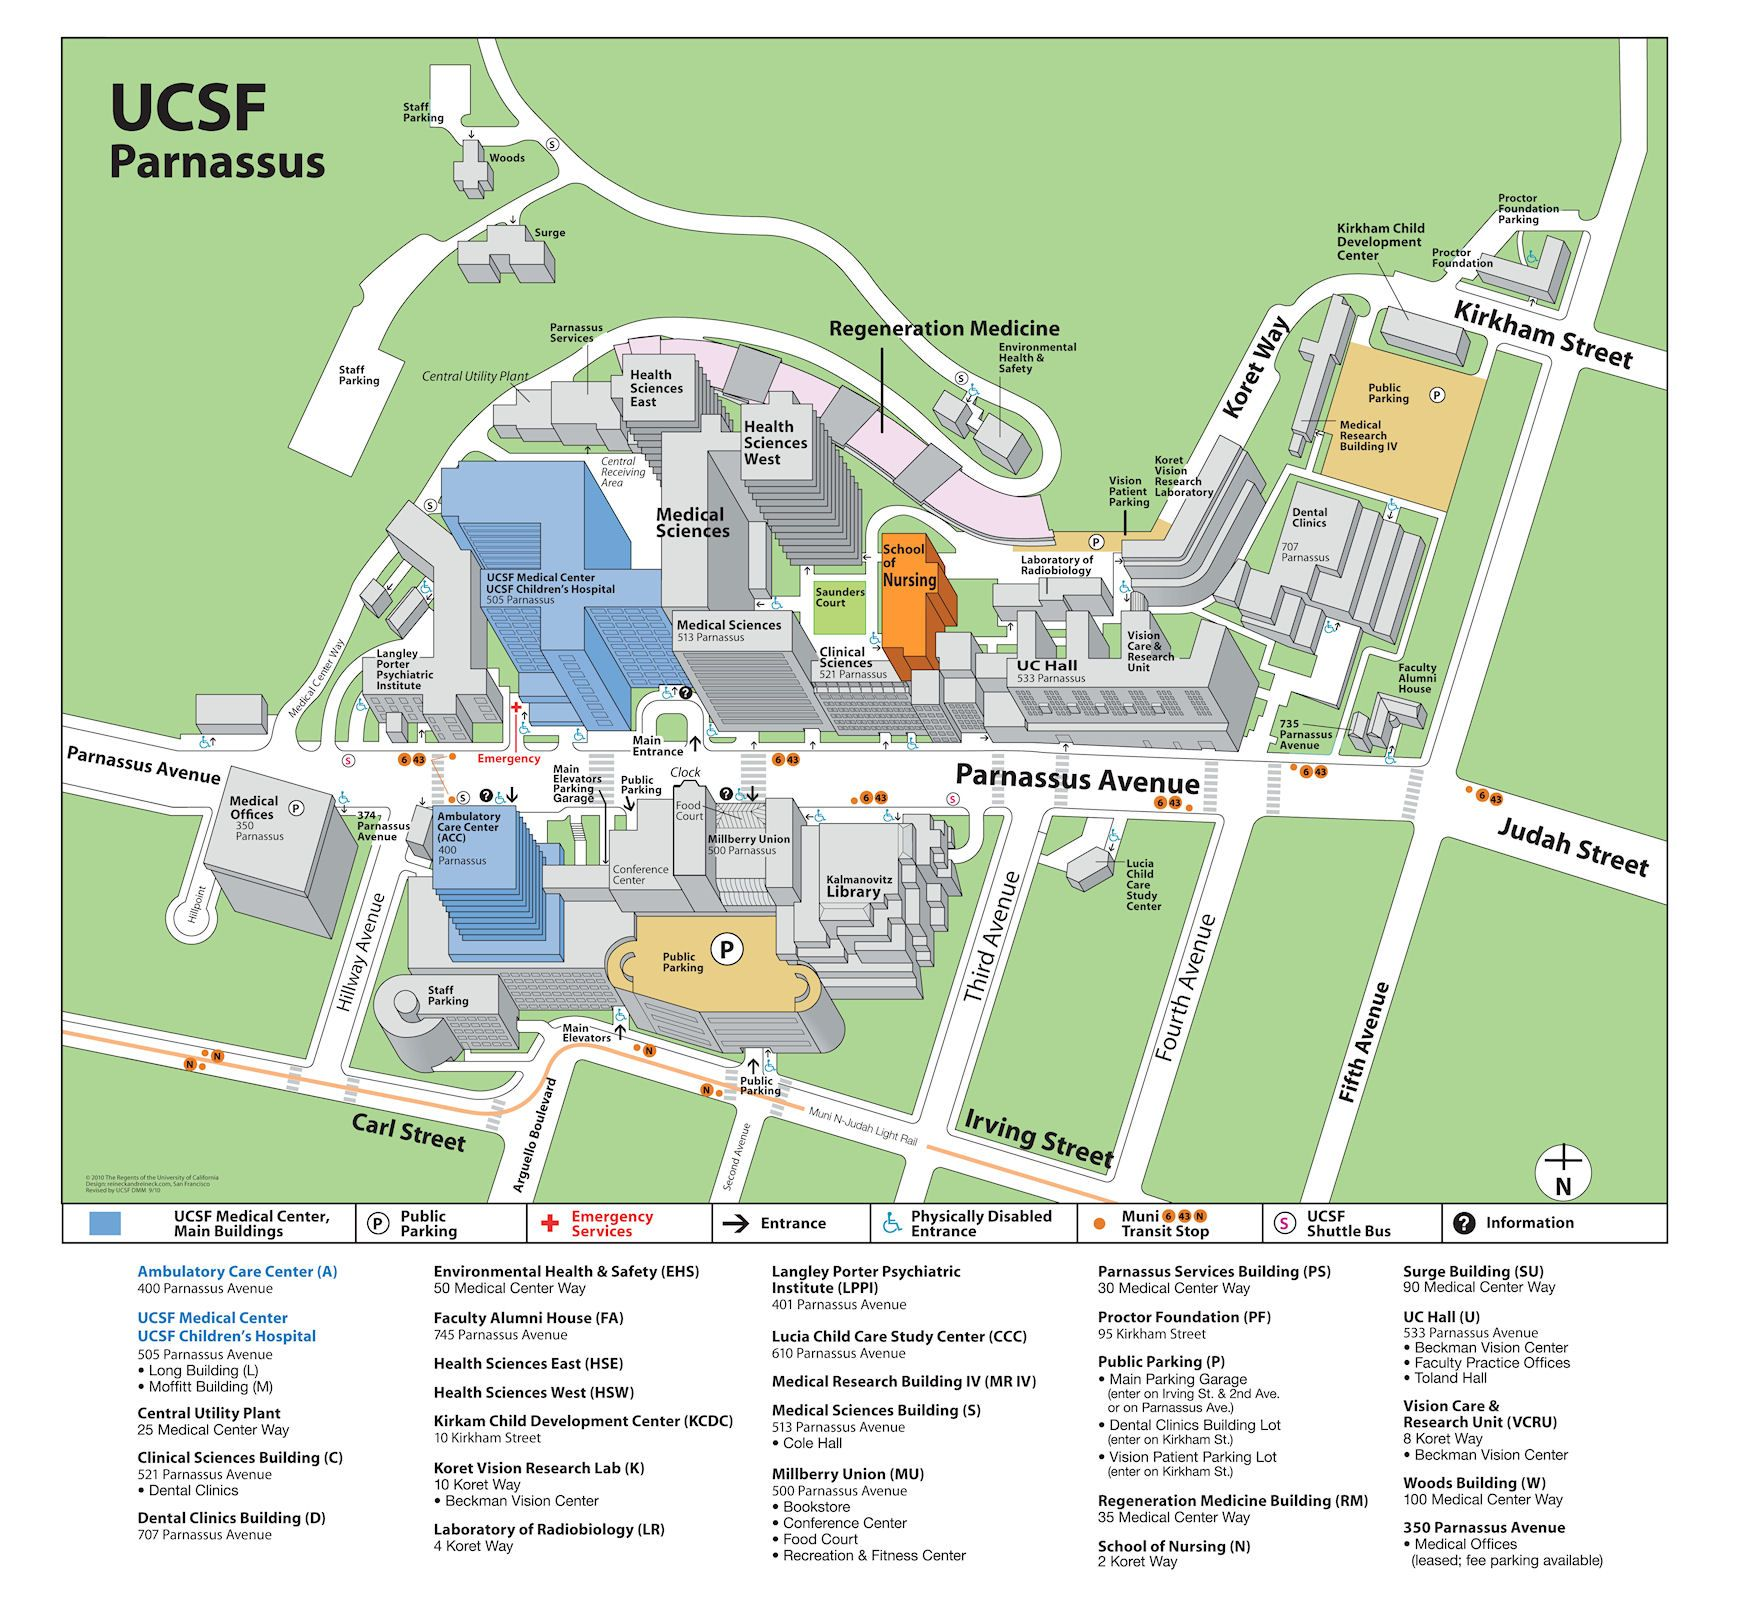 Campus Map.jpg   UC Oracles Toastmasters on mountain state university campus map, morehead university campus map, armstrong university campus map, cal state fullerton university campus map, campolindo campus map, academy of art university campus map, ole miss university campus map, lmu university campus map, bridgeport university campus map, eastern carolina university campus map, north dakota university campus map, smu university campus map, east tennessee state university campus map, cal poly pomona university campus map, kentucky university campus map, virginia university campus map, humboldt university campus map, southern new hampshire university campus map, xiamen university campus map, puget sound university campus map,